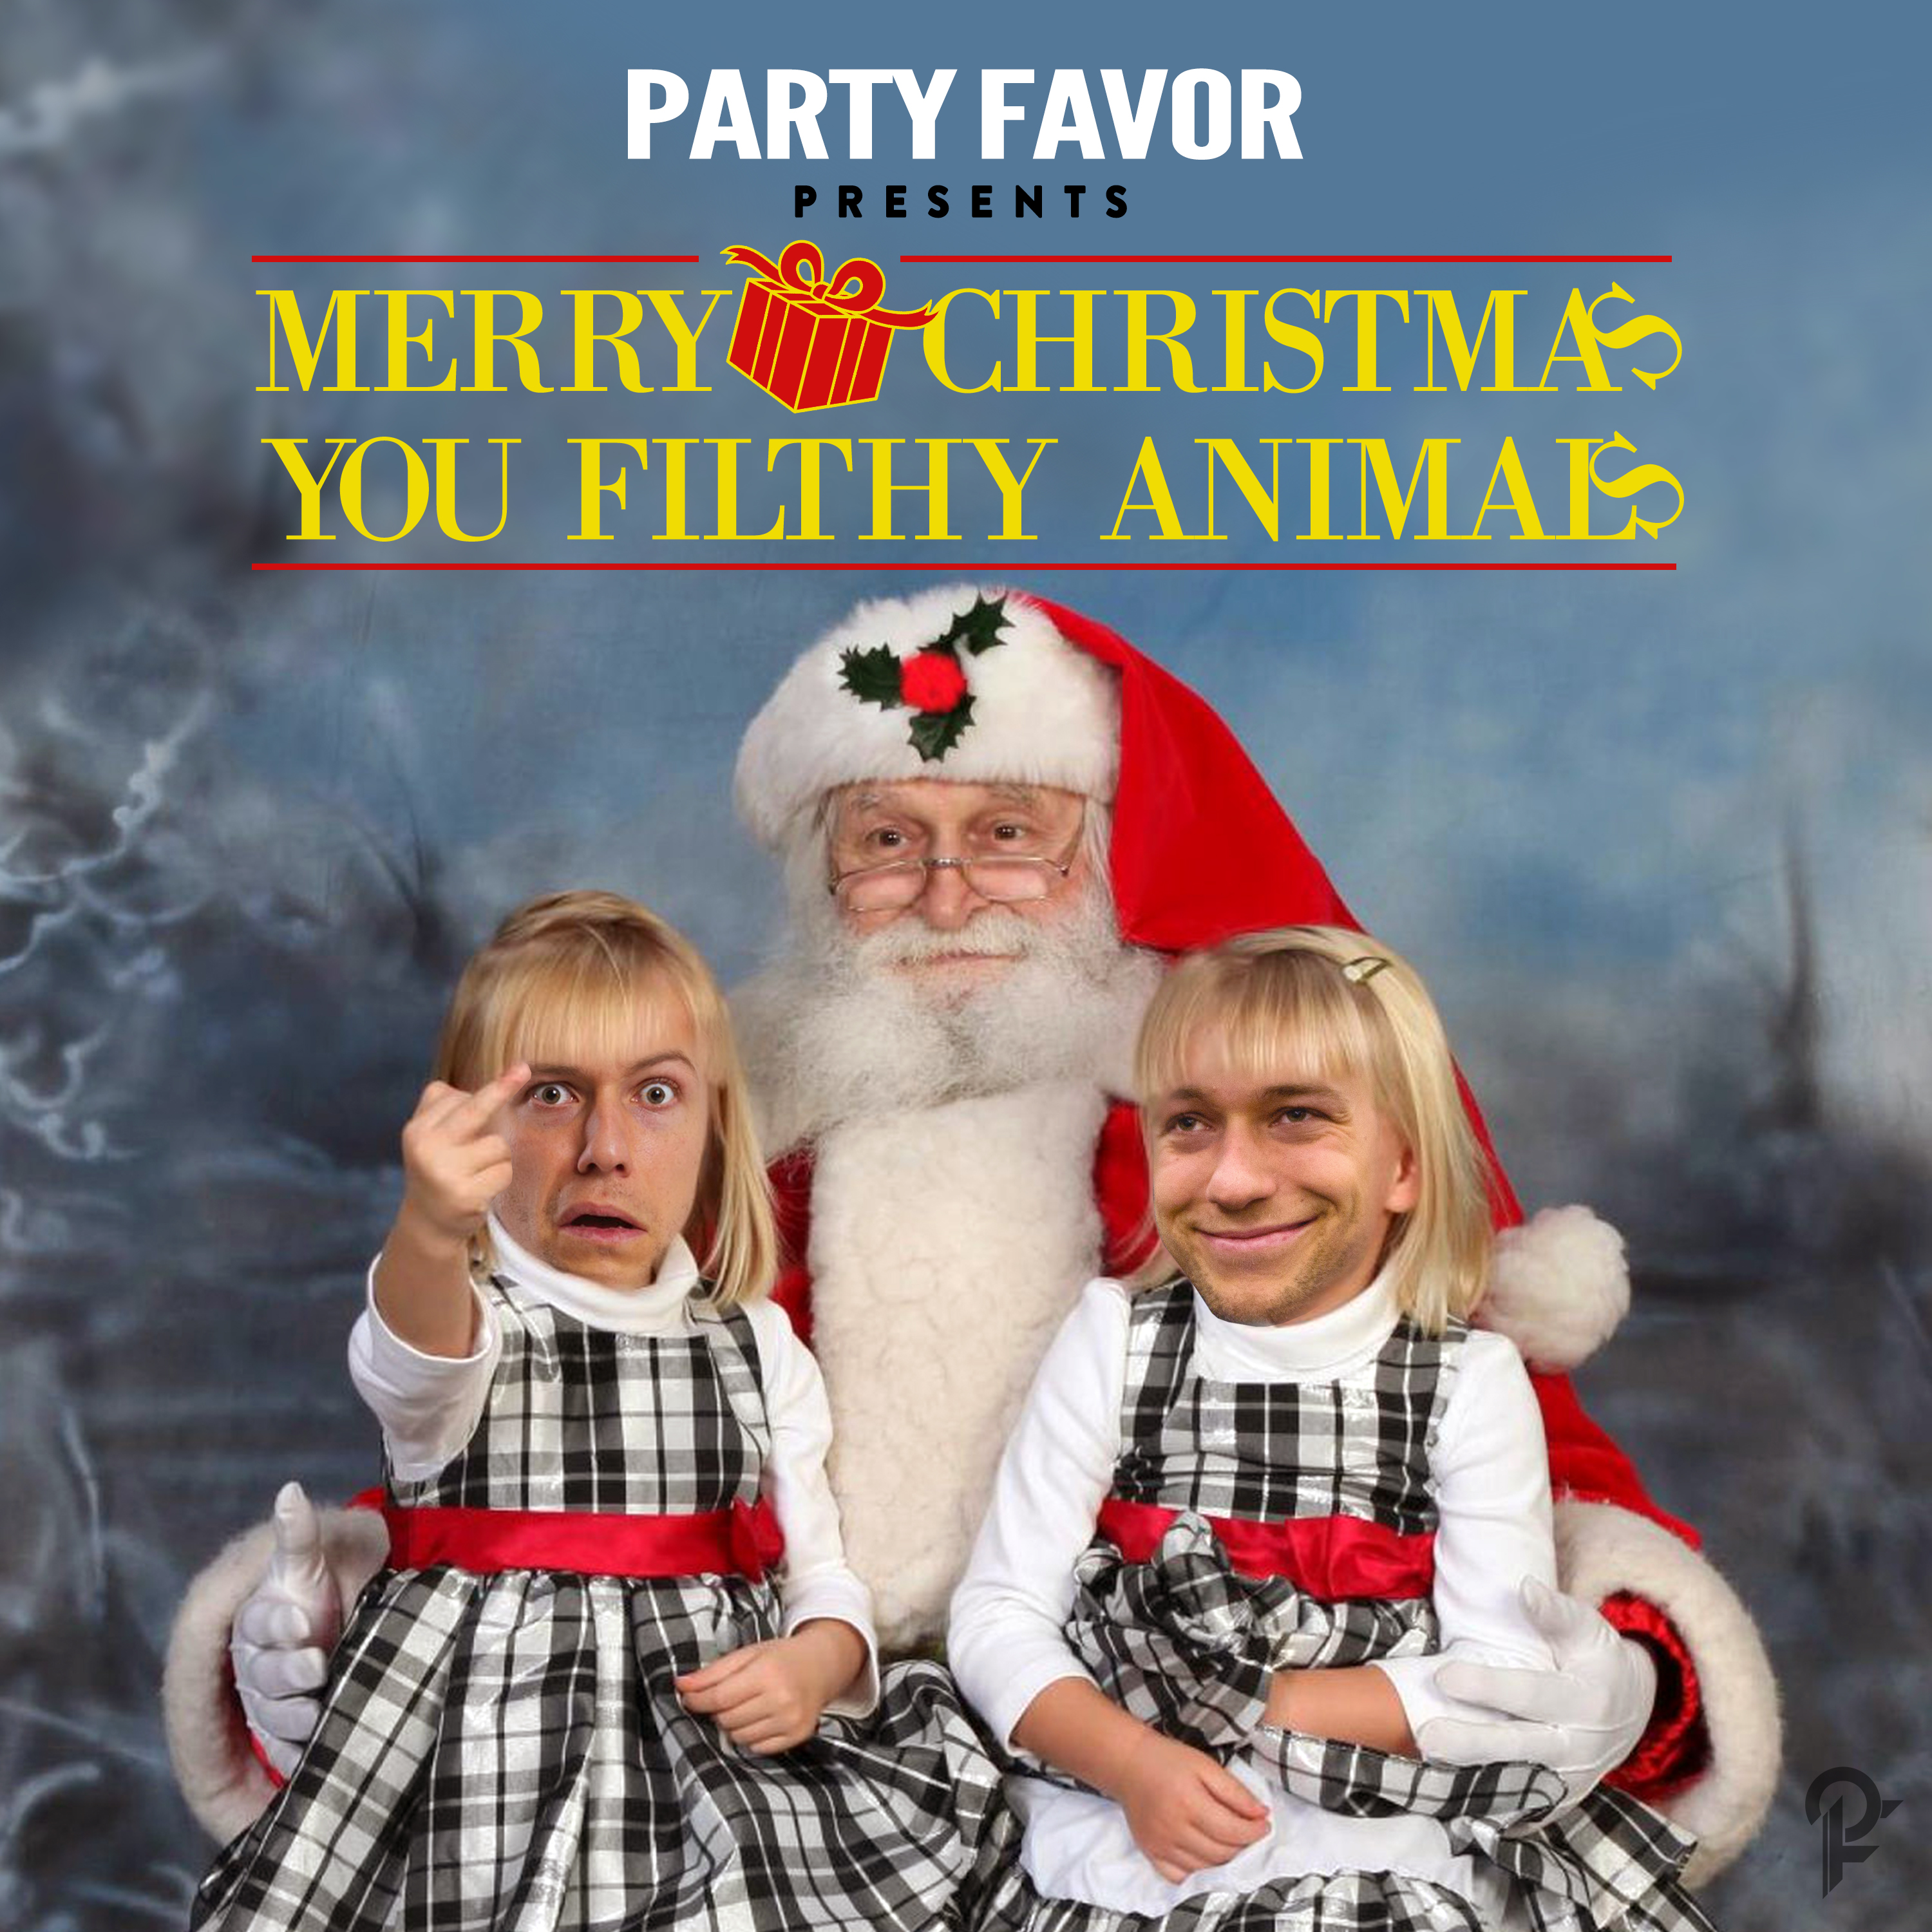 Merry Christmas You Filthy Animals.Merry Christmas You Filthy Animals By Party Favor Free